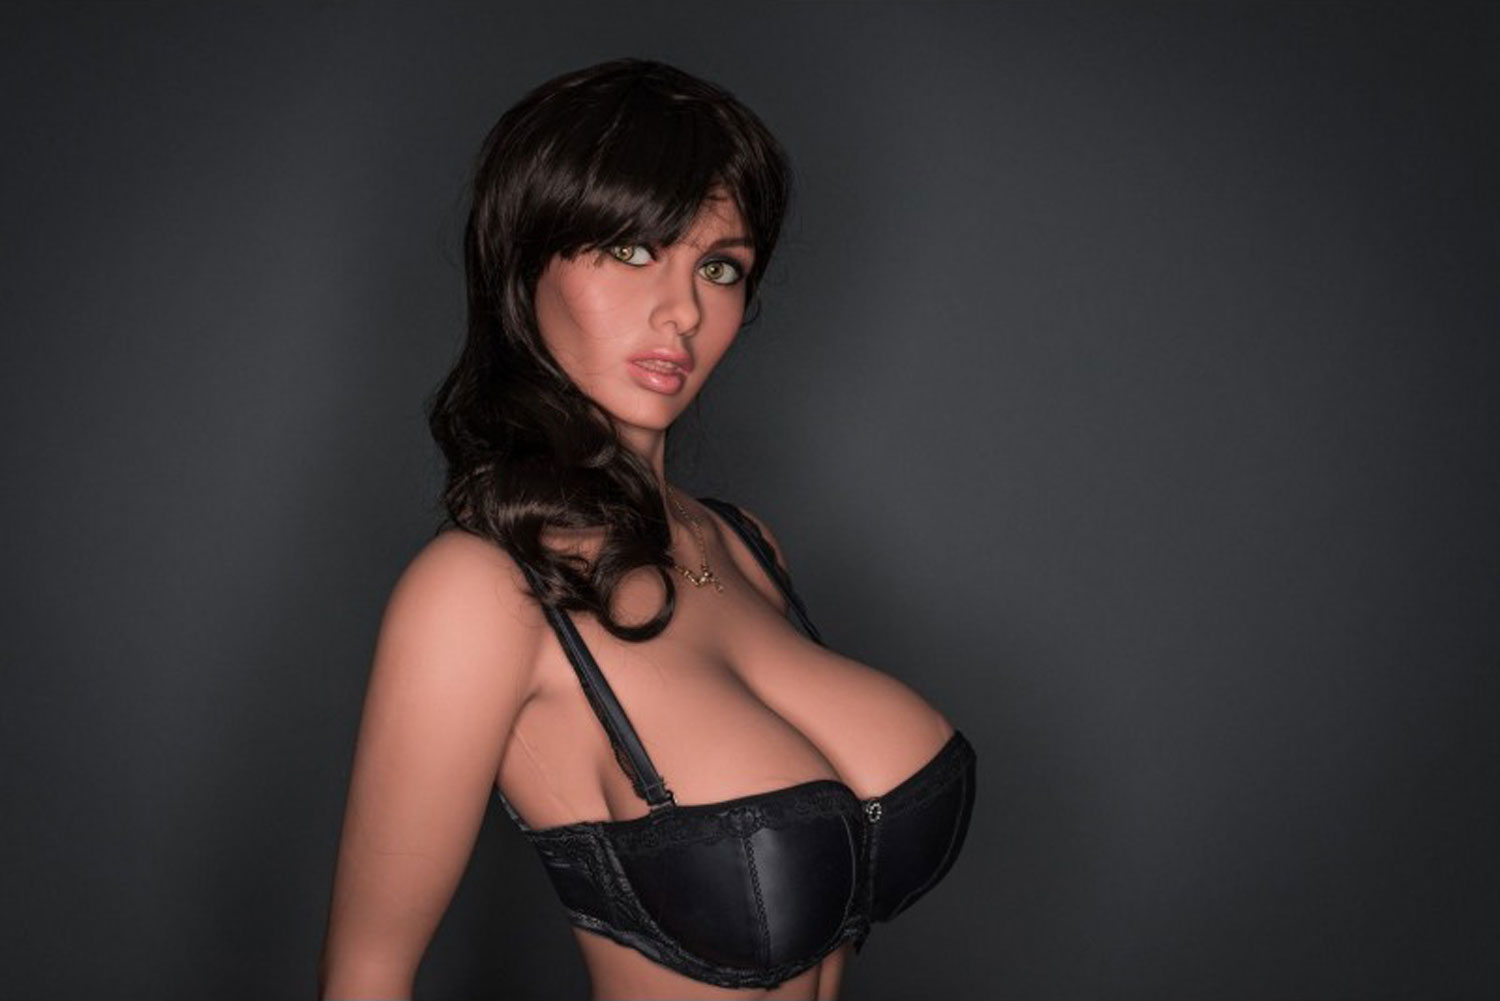 Big breasted sex doll with big brown eyes